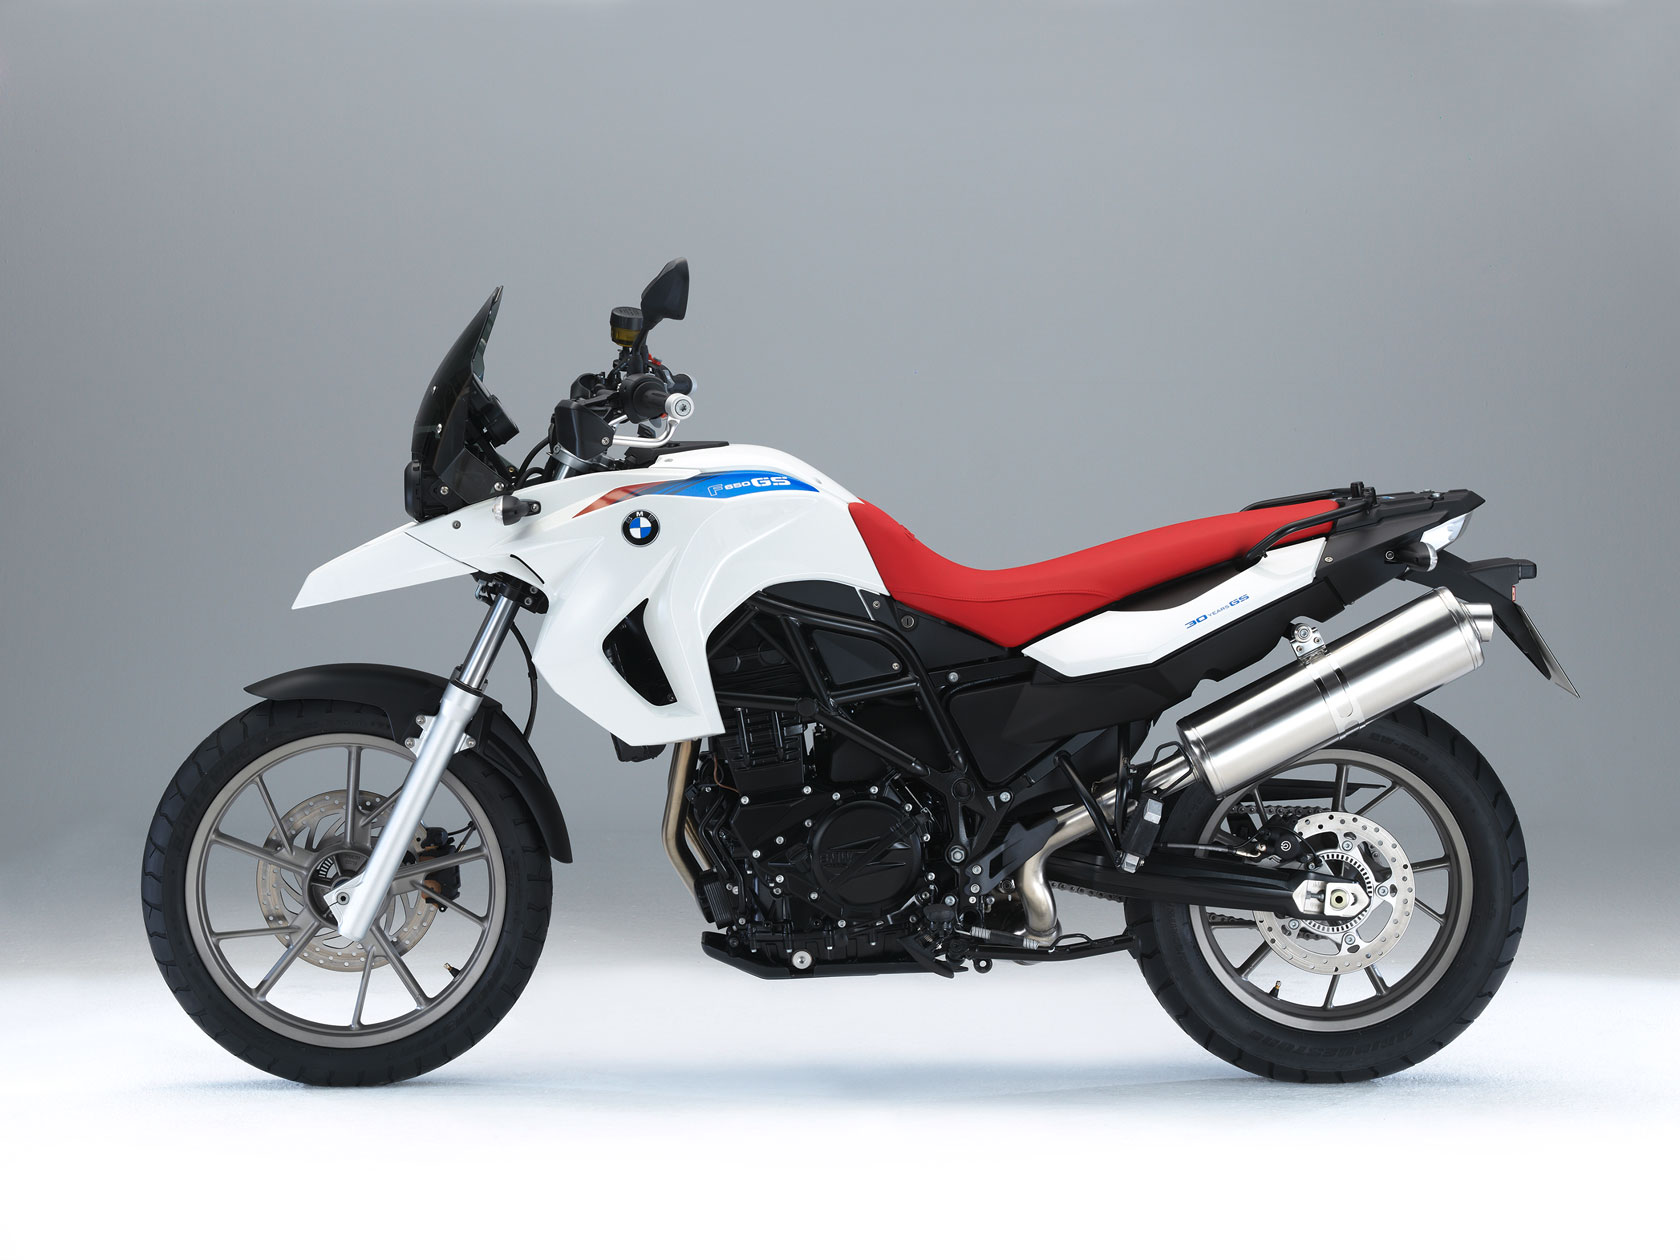 bmw f 650 gs 30 years gs special model specs 2010. Black Bedroom Furniture Sets. Home Design Ideas